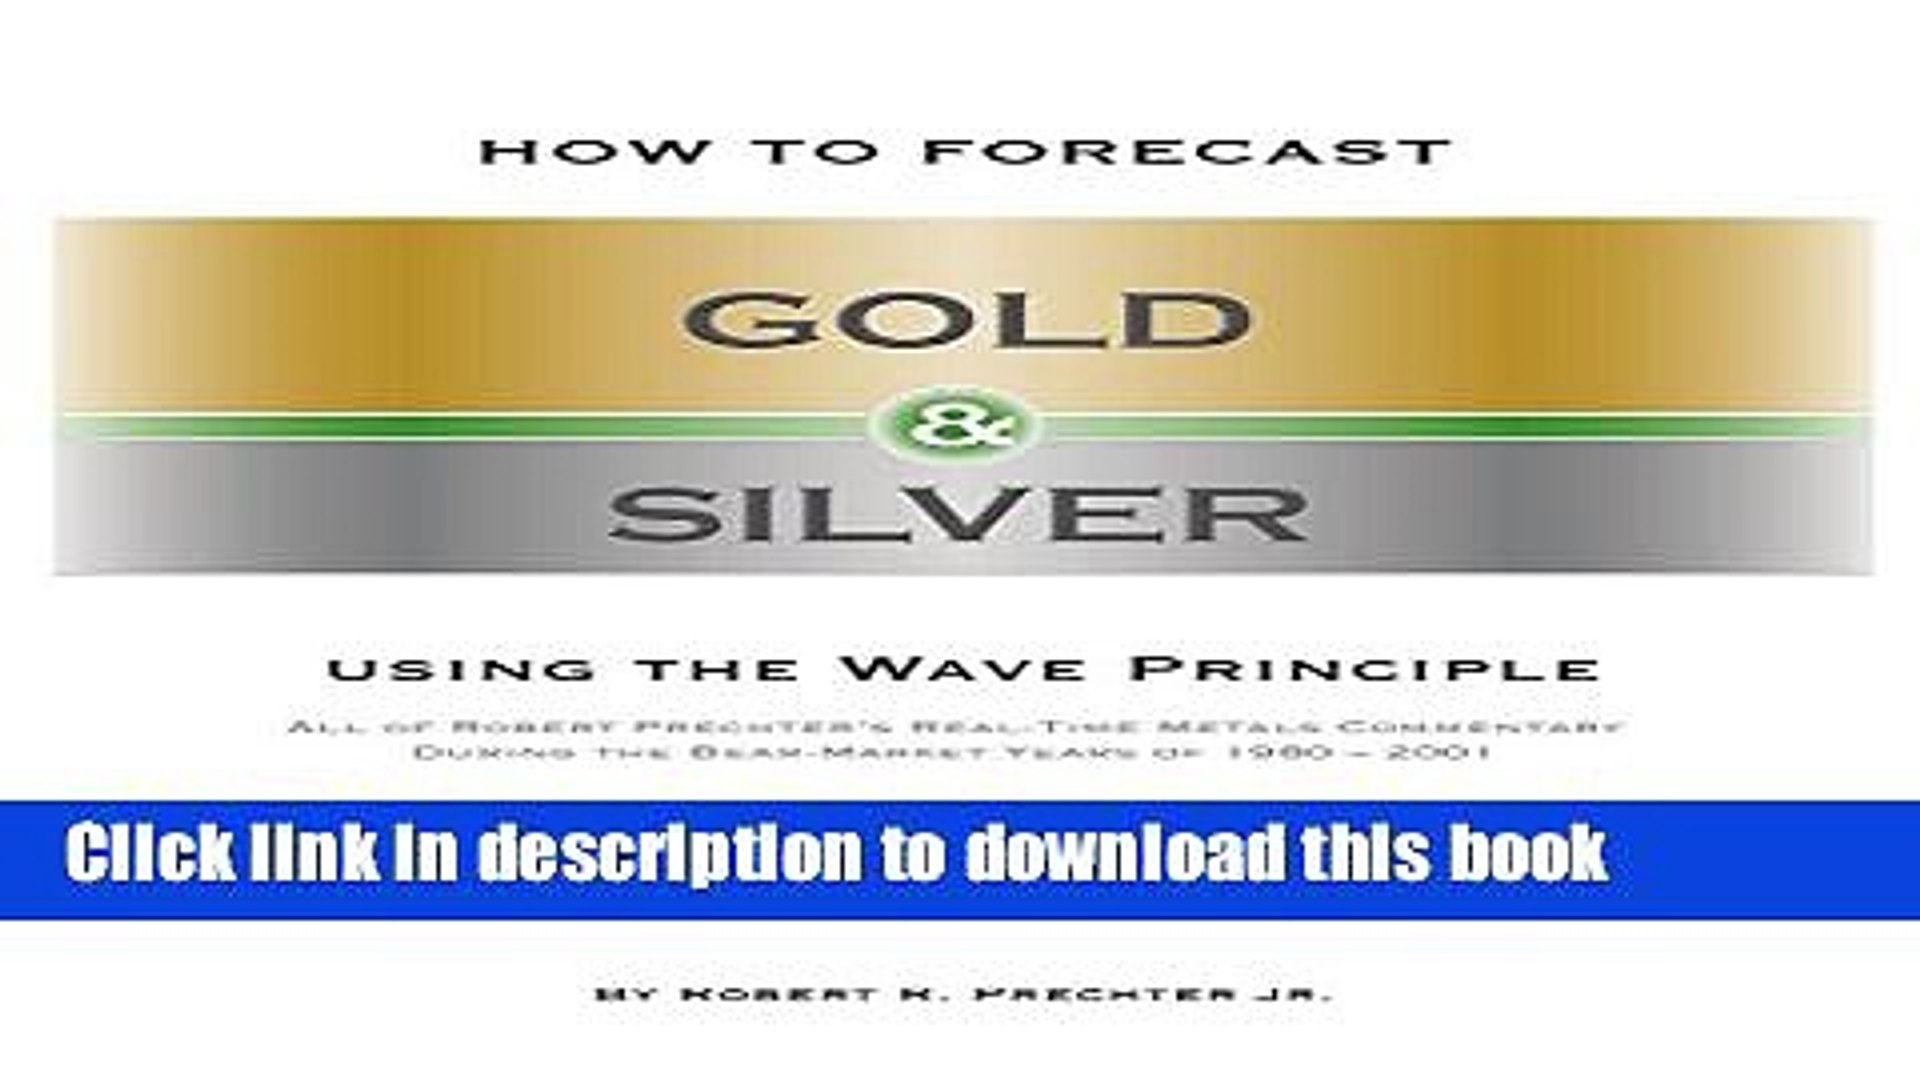 [PDF] HOW TO FORECAST GOLD AND SILVER USING THE WAVE PRINCIPLE: All of Robert Prechter s Real-Time